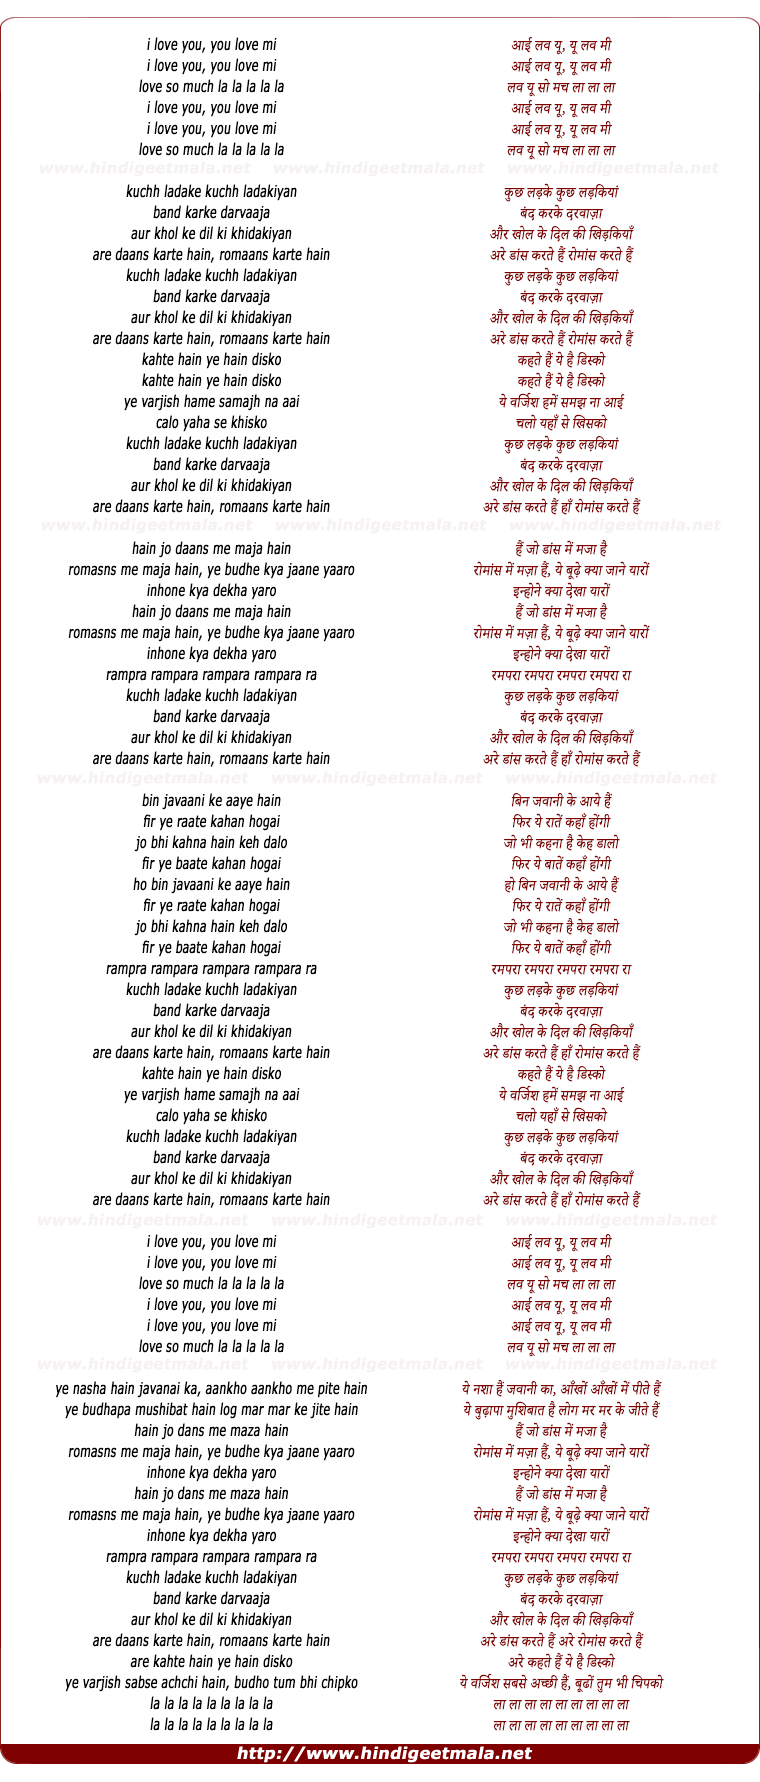 lyrics of song Kuchh Ladke Kuchh Ladkiya